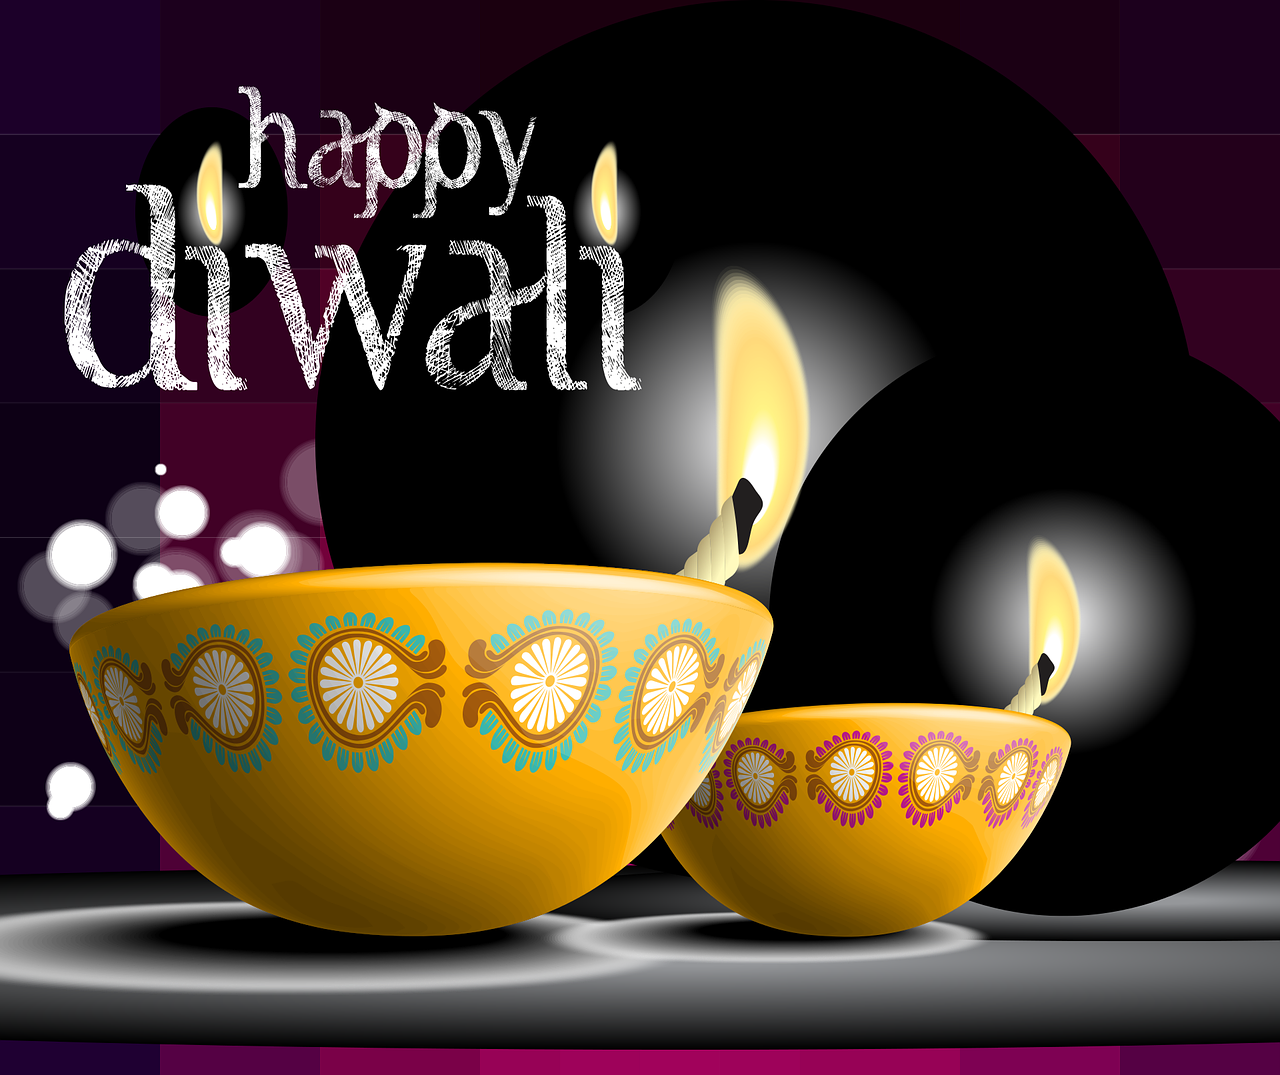 Happy Diwali Indian Holiday India - Free vector graphic on Pixabay